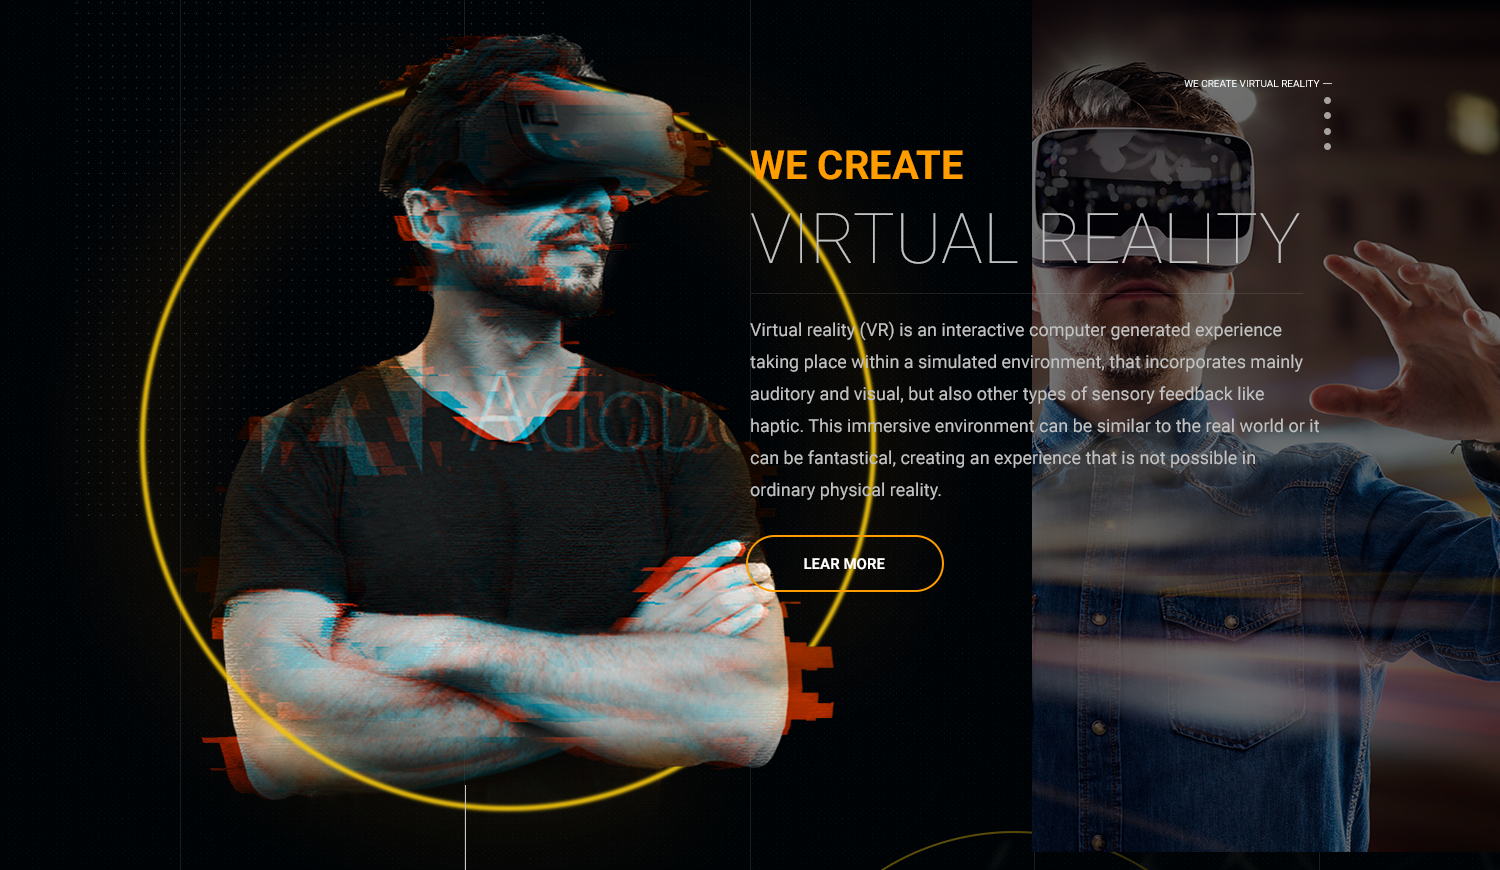 A VR company website header image